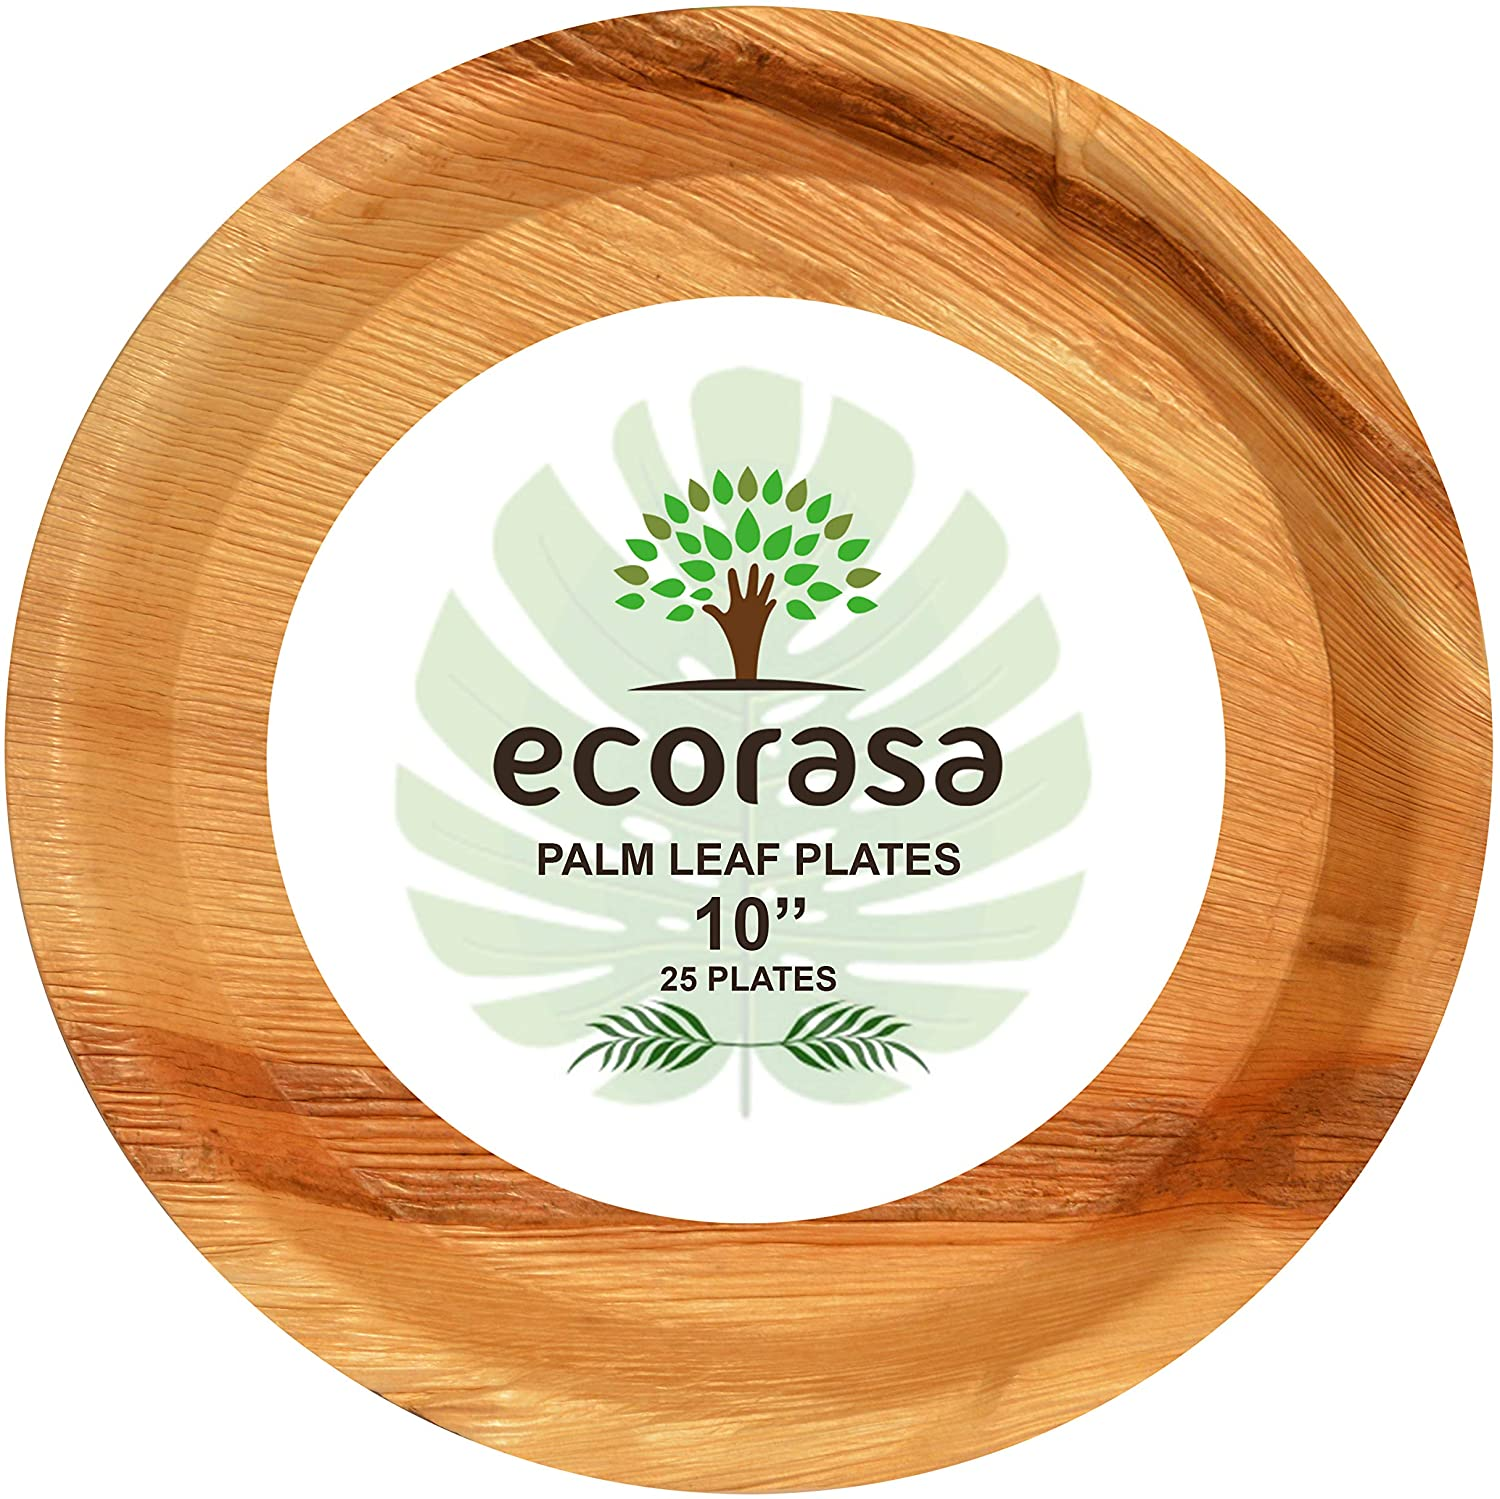 ecorasa -Areca Palm Leaf Plates- Eco-friendly, Bio-degradable, Disposable plates - Elegant and Sturdy Plates for Special Events like Wedding, Camping, Hiking - Pack of 25 - (10